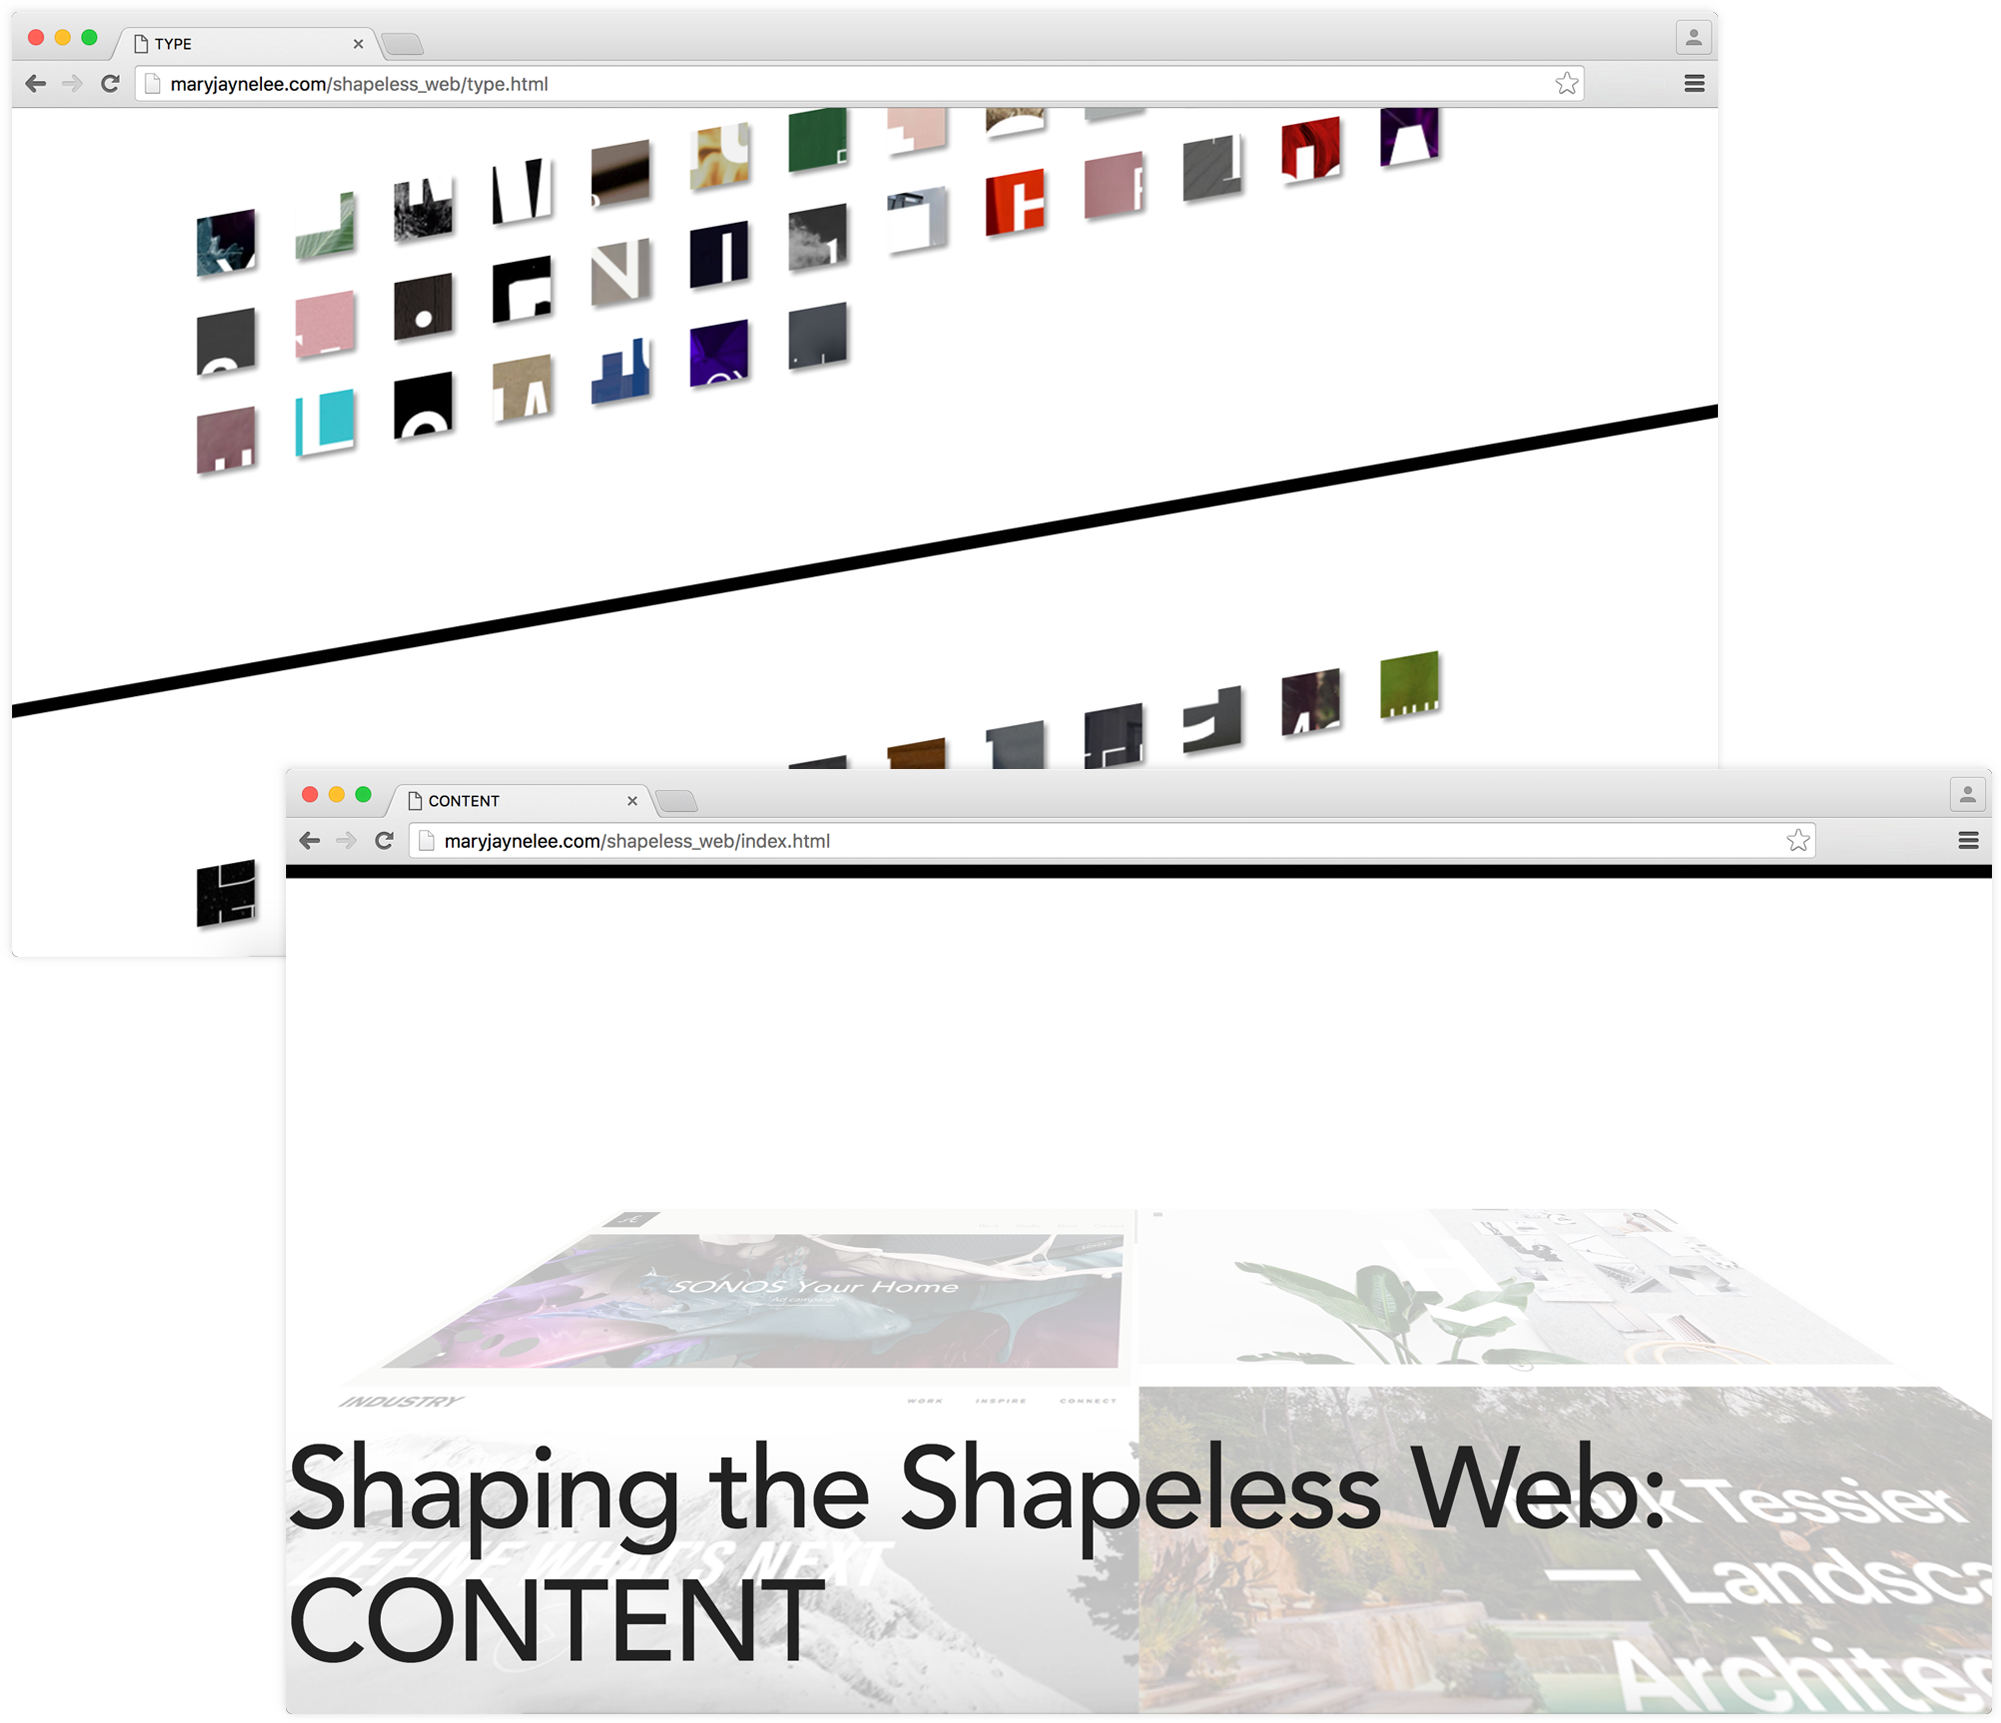 Shaping the Shapeless Web project content screens